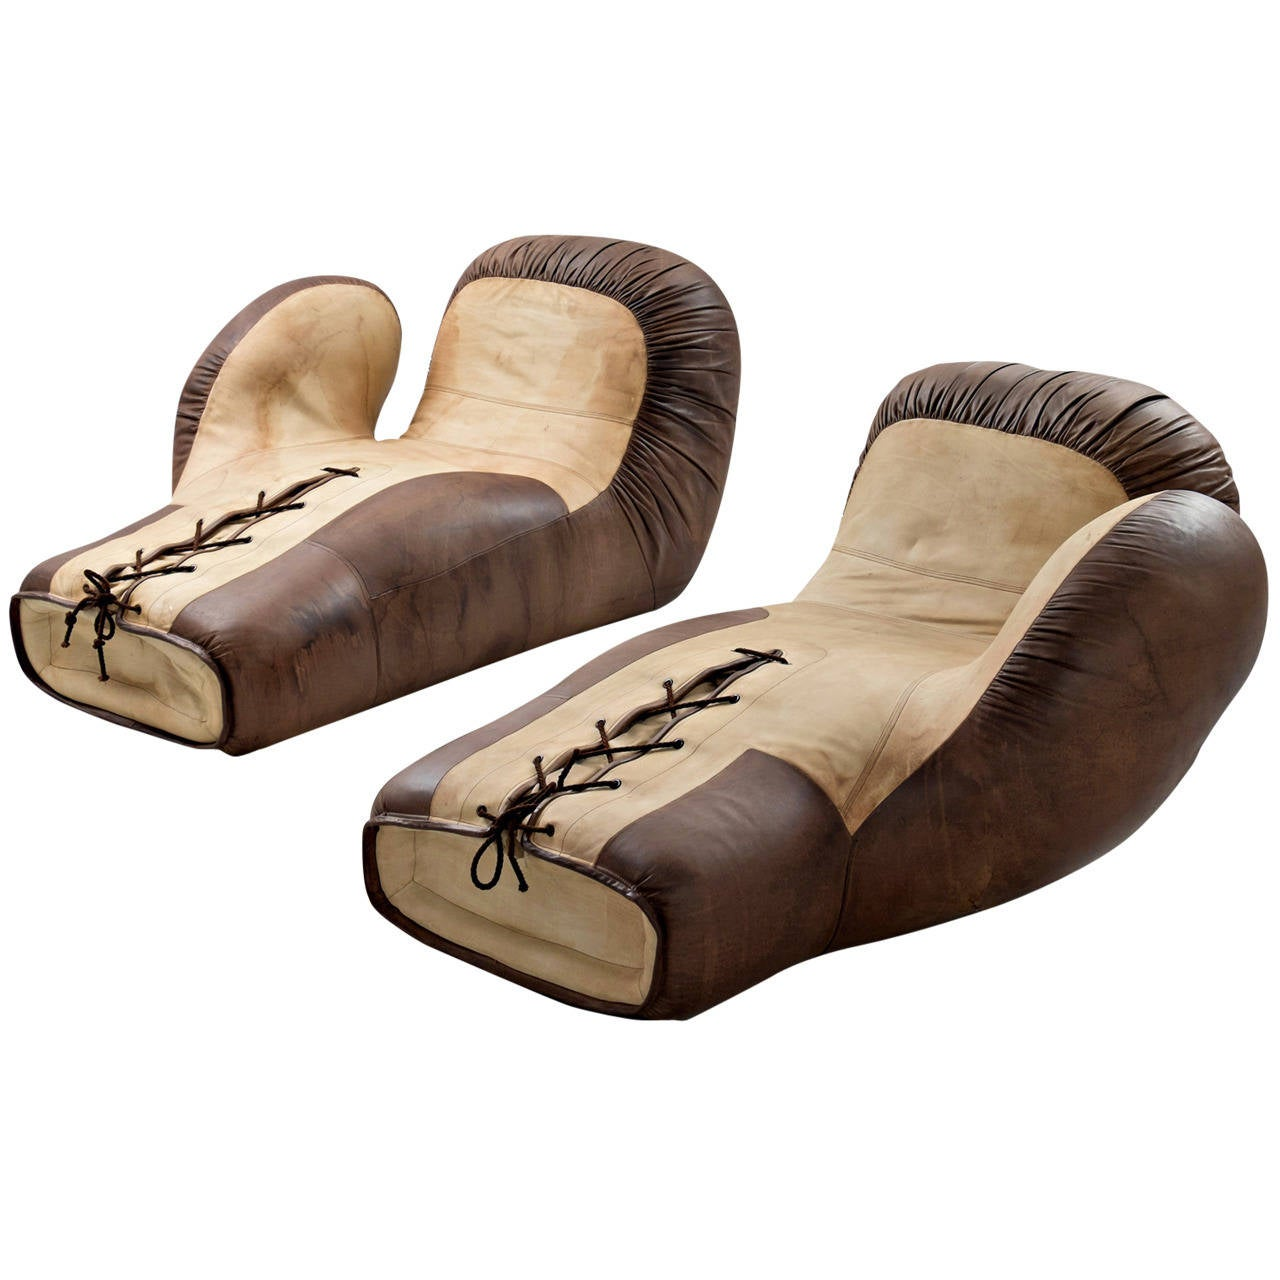 Rare set of two de sede boxing glove chaise longues in for Brown leather chaise longue